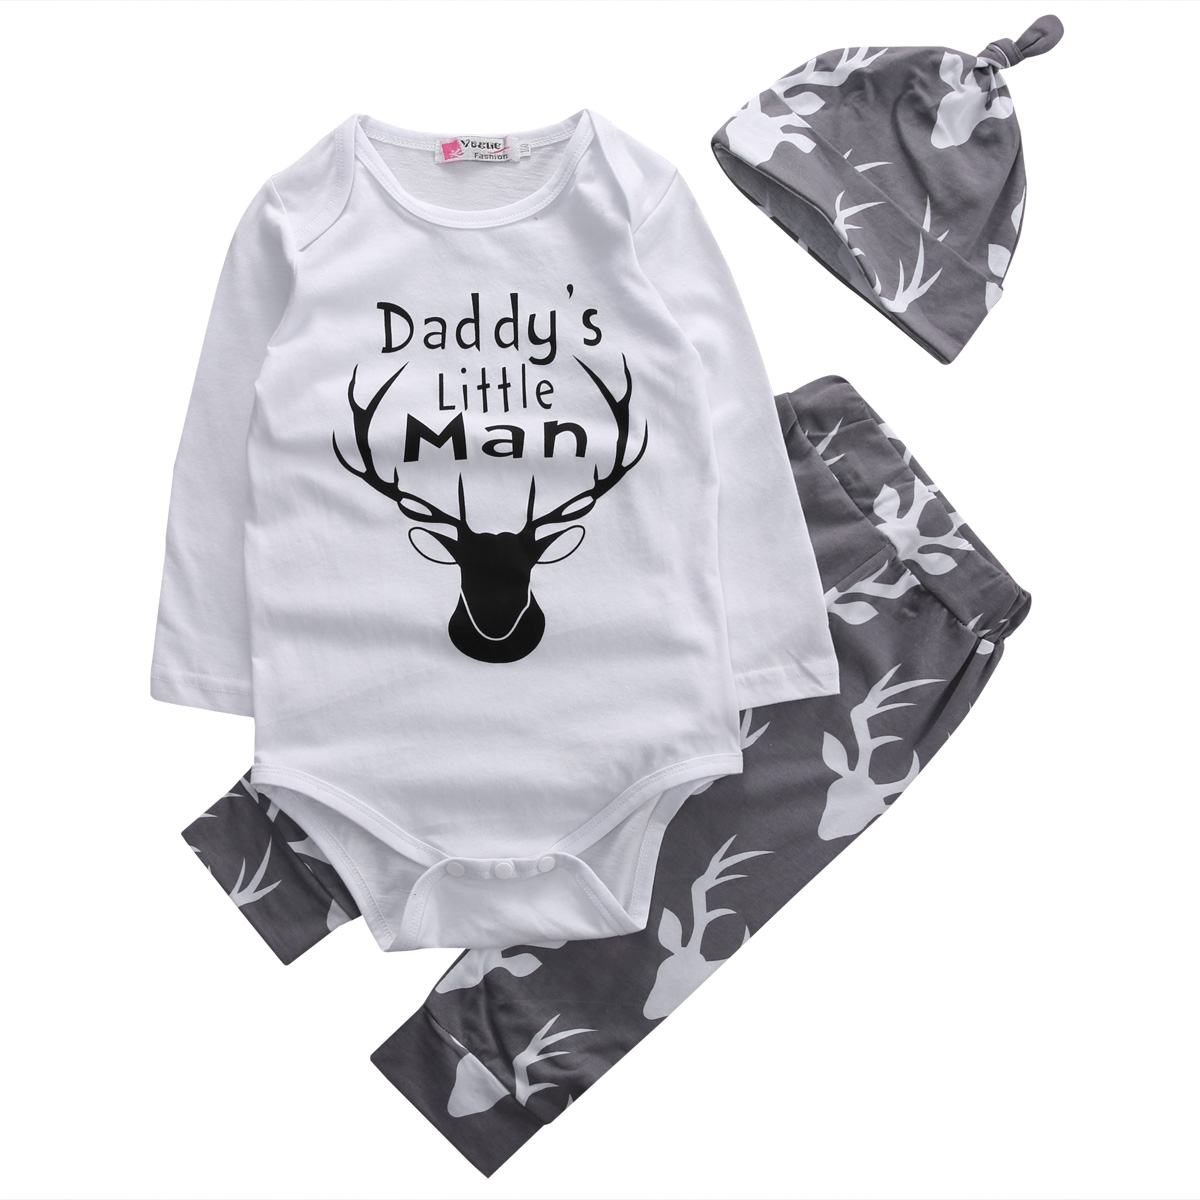 3PCS Newborn Kids Baby Boys Clothes Daddy's Little Man Deer Romper Pants Legging Hat Outfit Toddler Infant Bebek Clothing Set baby boys clothes set 2pcs kids boy clothing set newborn infant gentleman overall romper tank suit toddler baby boys costume